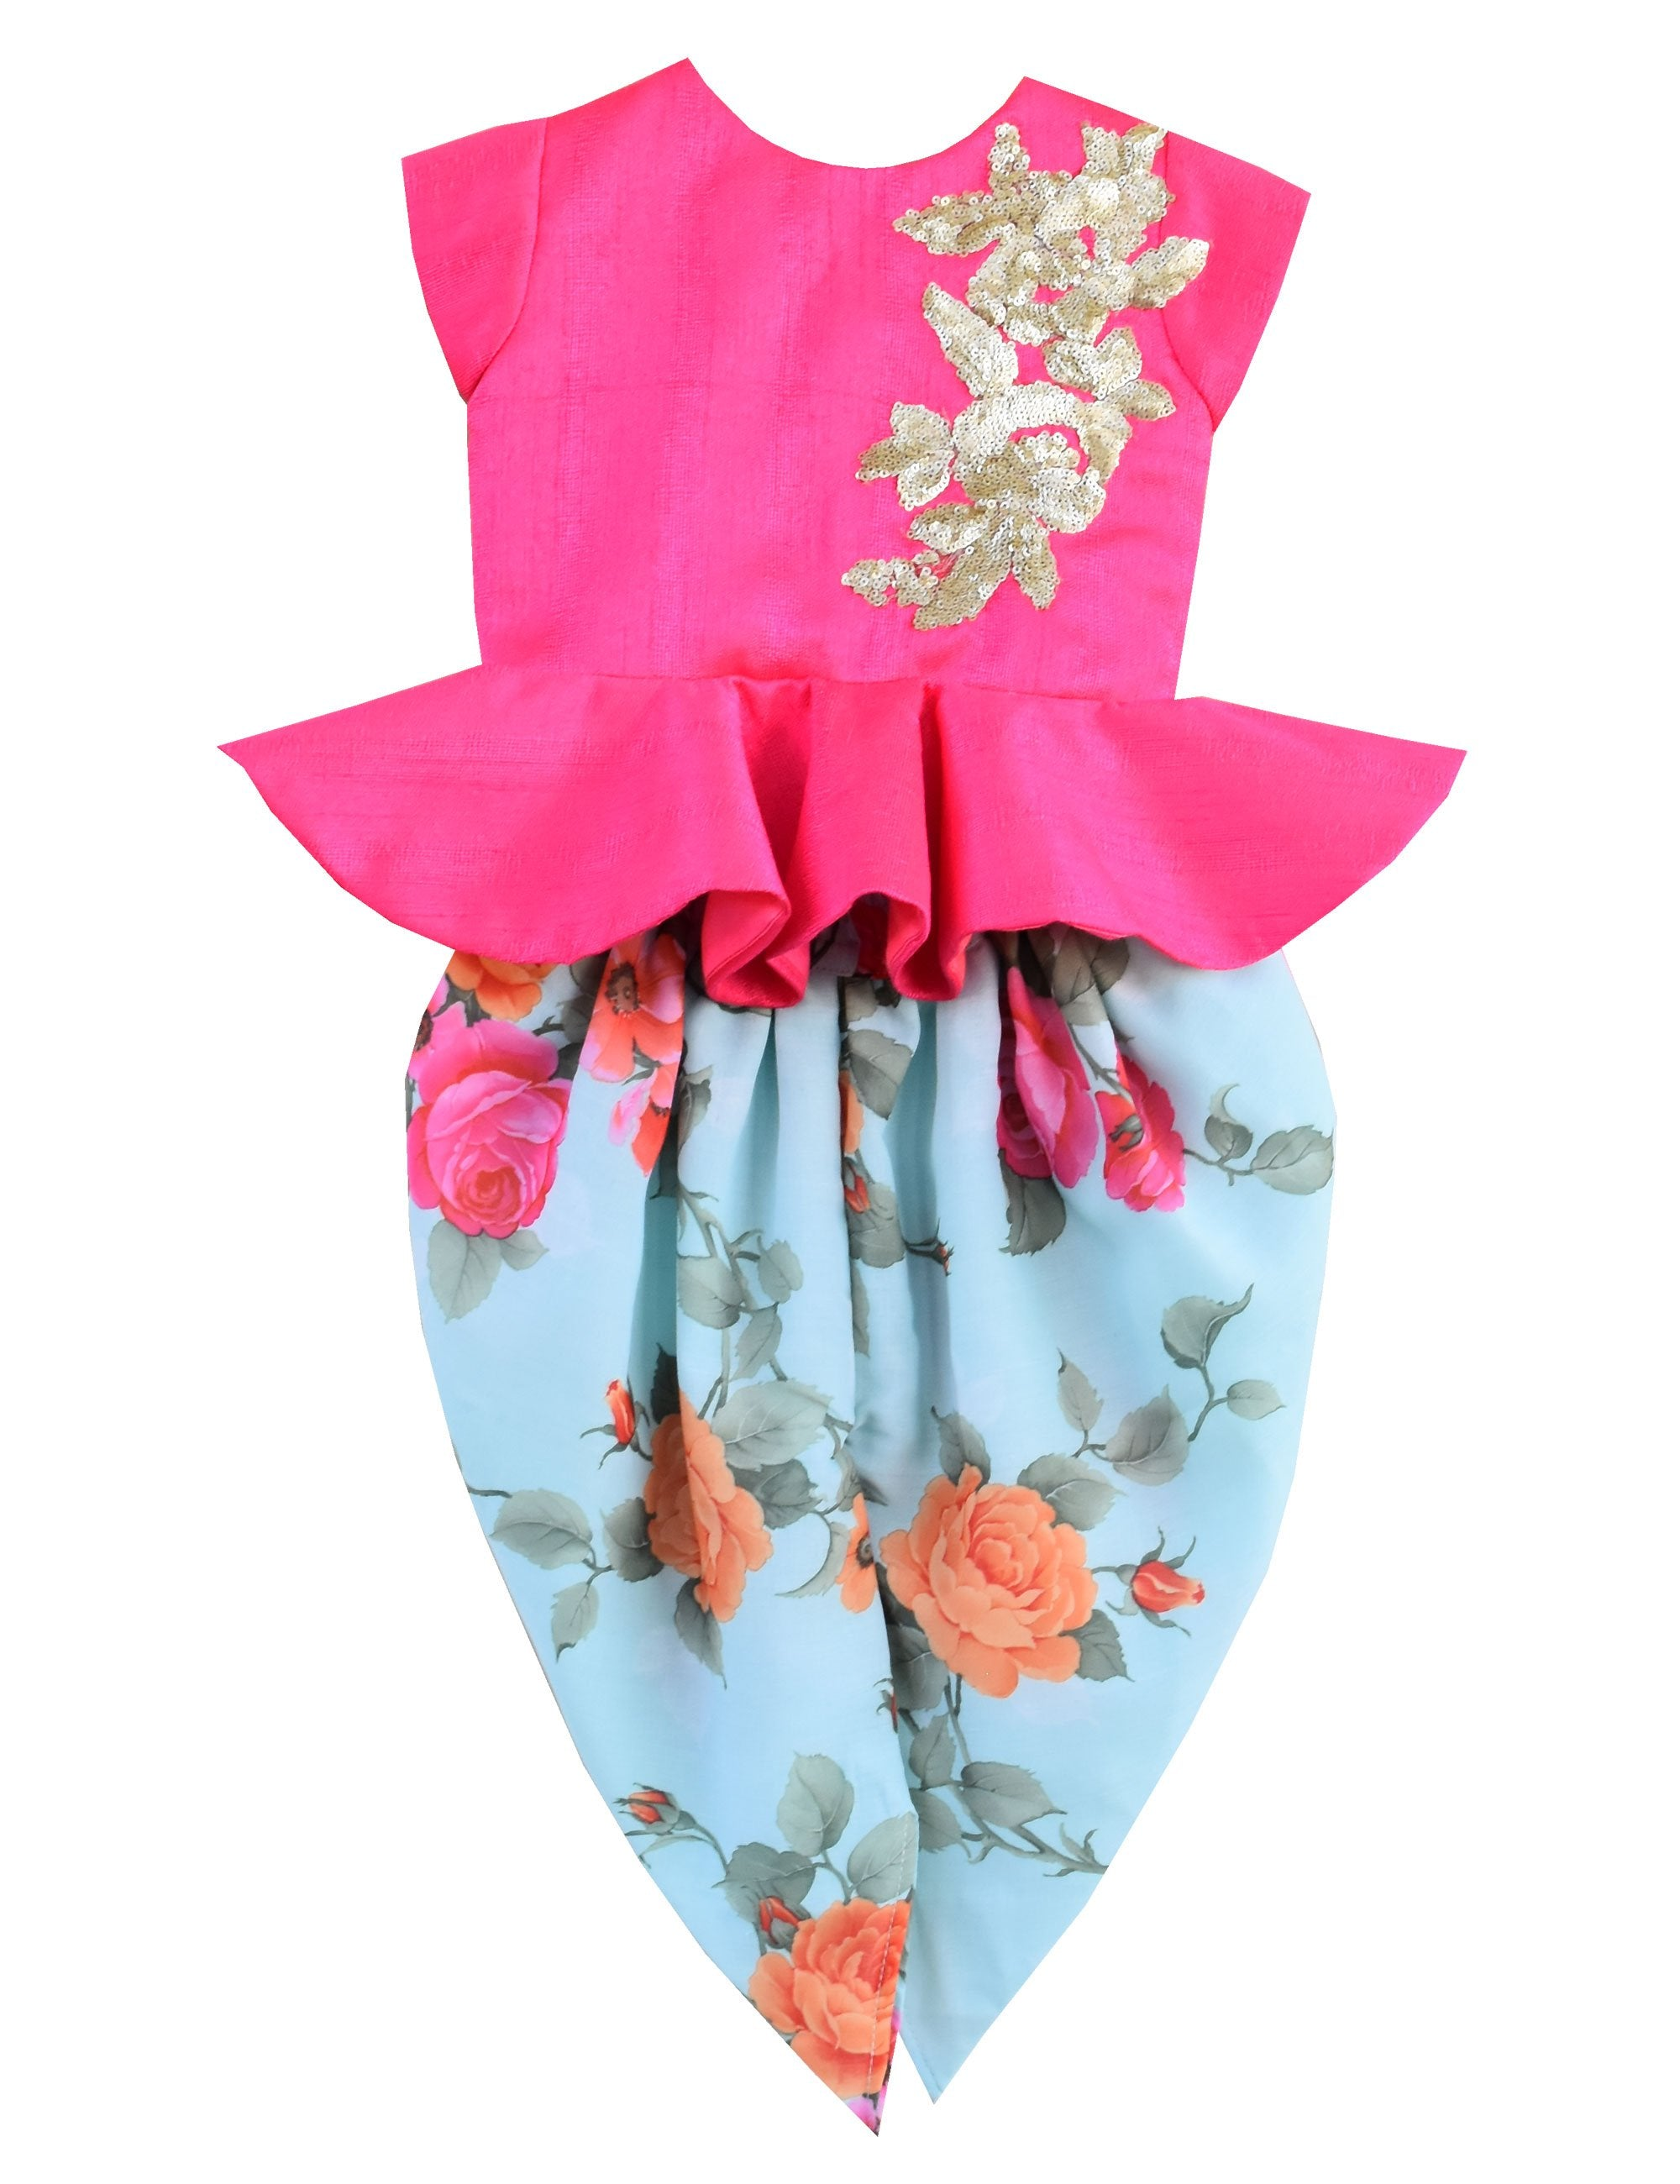 Peplum Choli with Printed Dhoti in Blue and Pink Colour for Girls